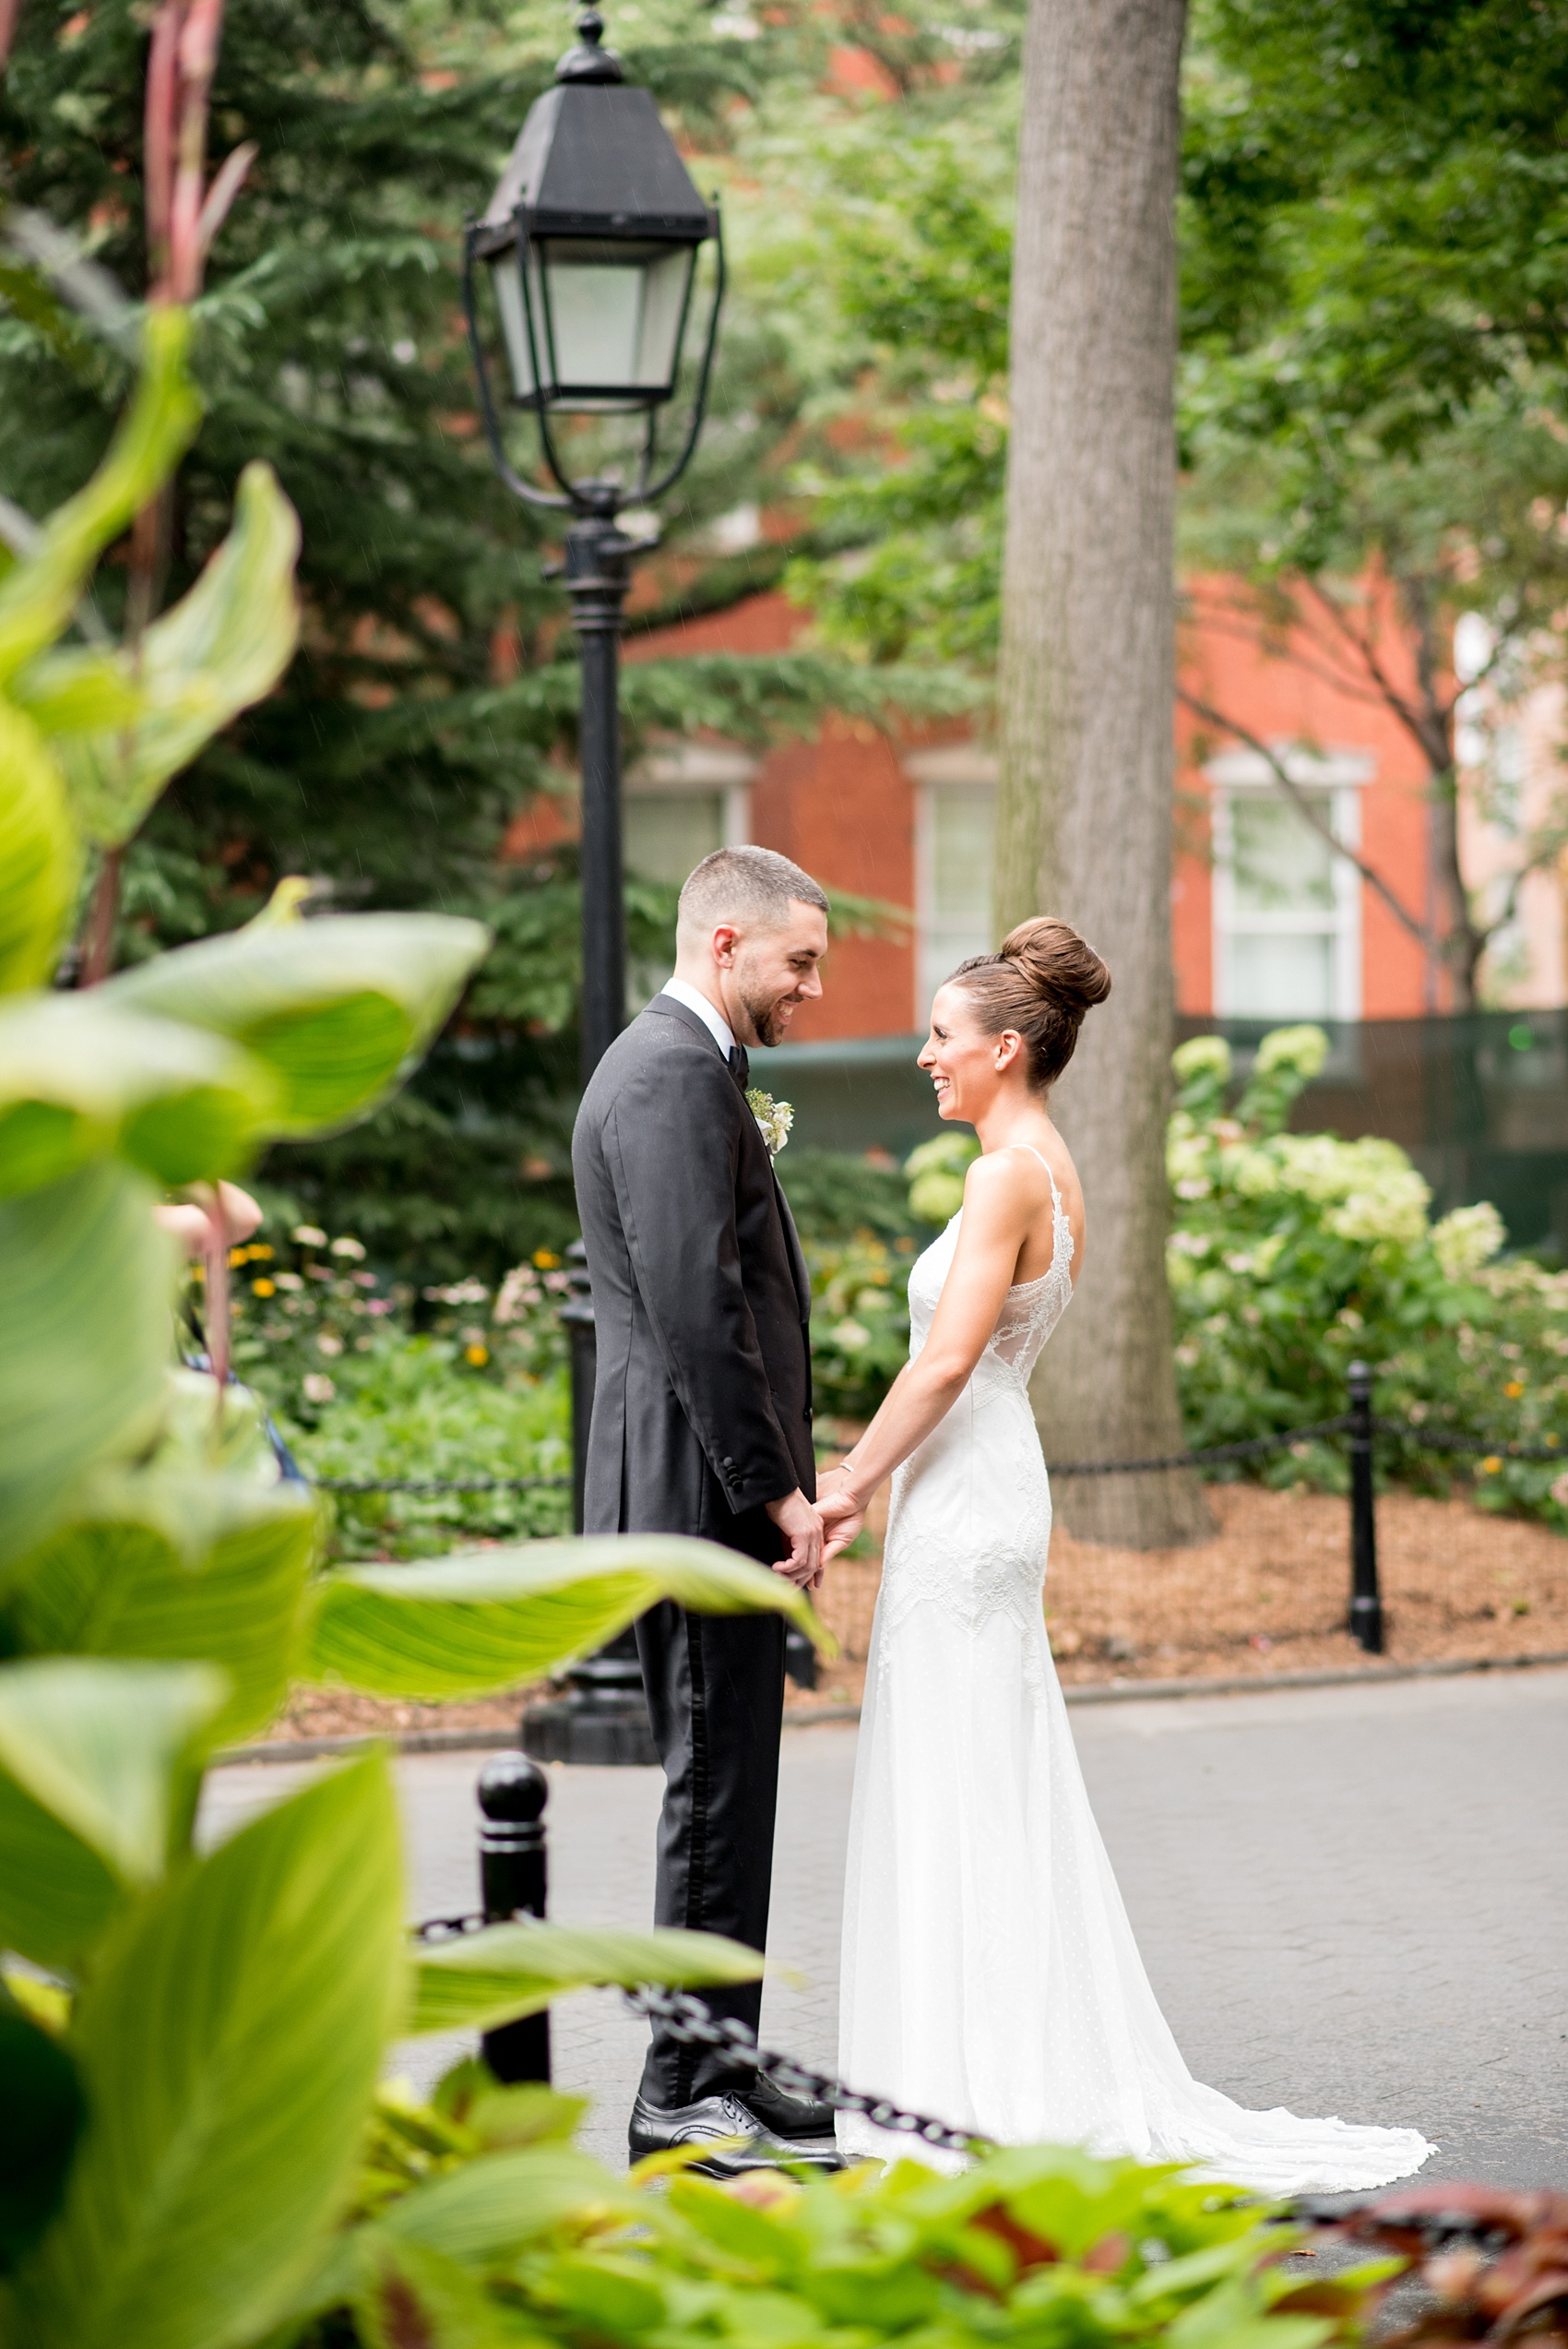 Mikkel Paige Photography photos of a luxury wedding in NYC. Image of the bride and groom in Washington Square Park.